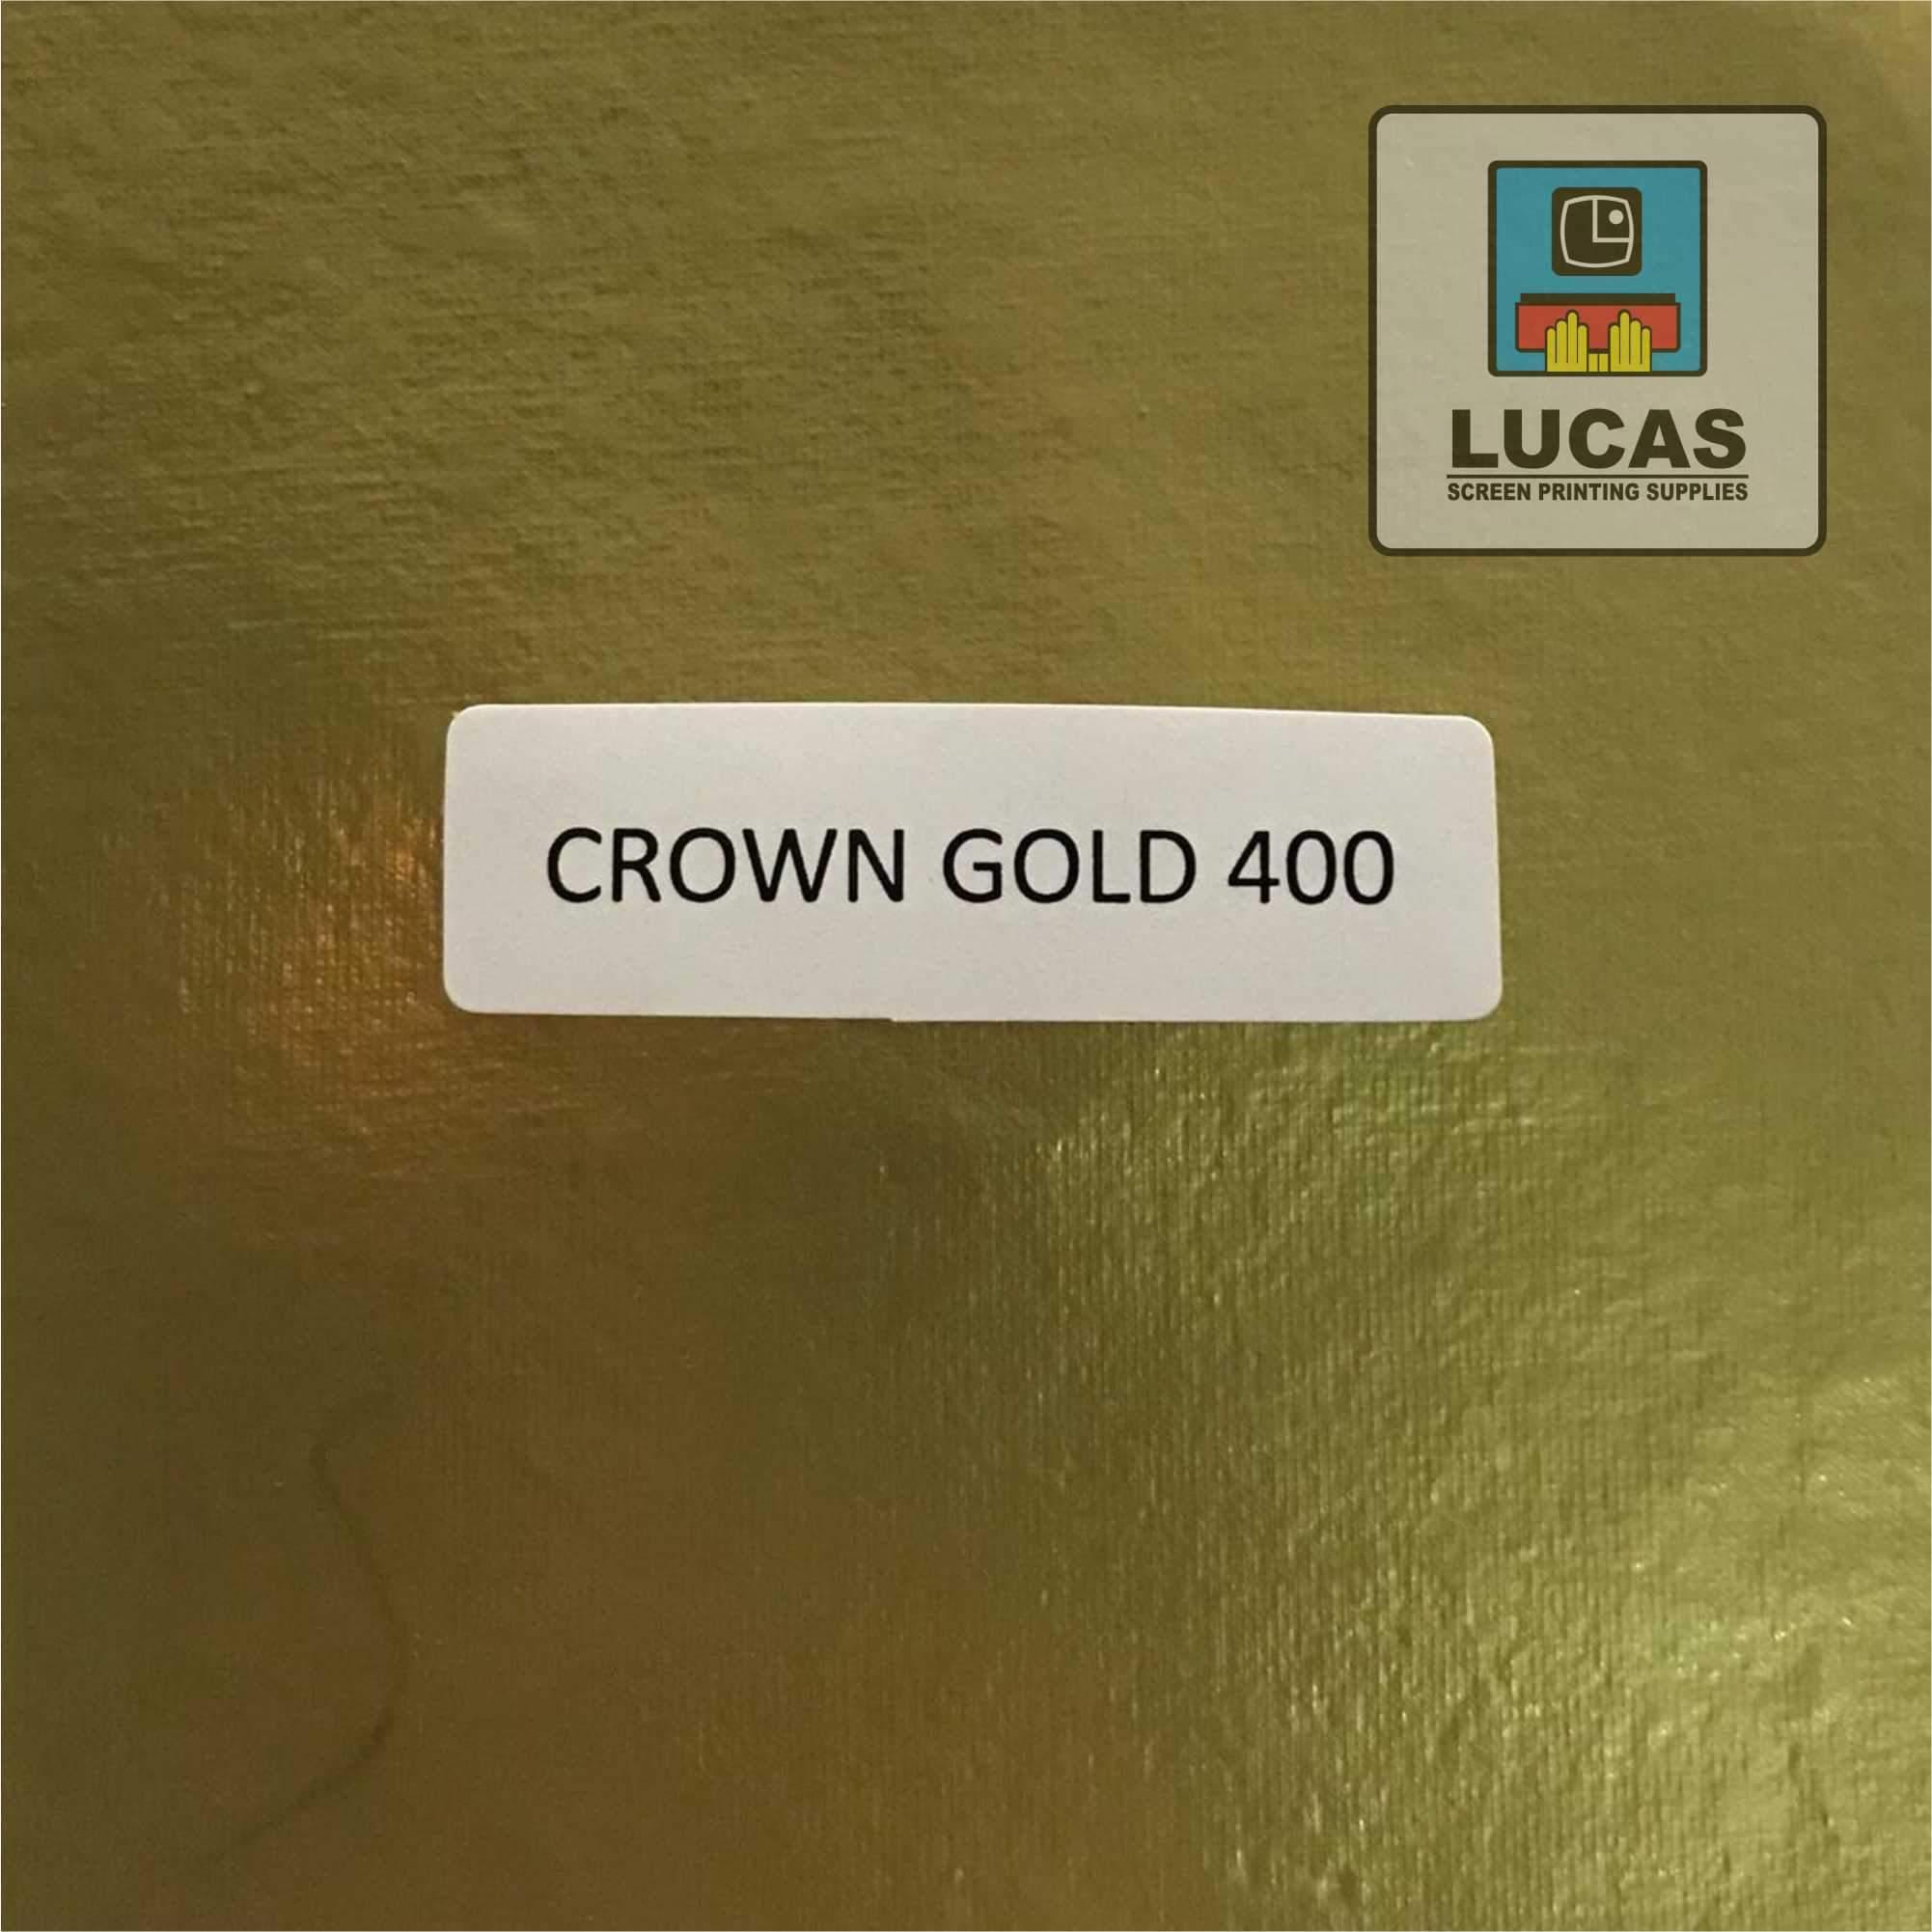 CROWN GOLD 400.jpg